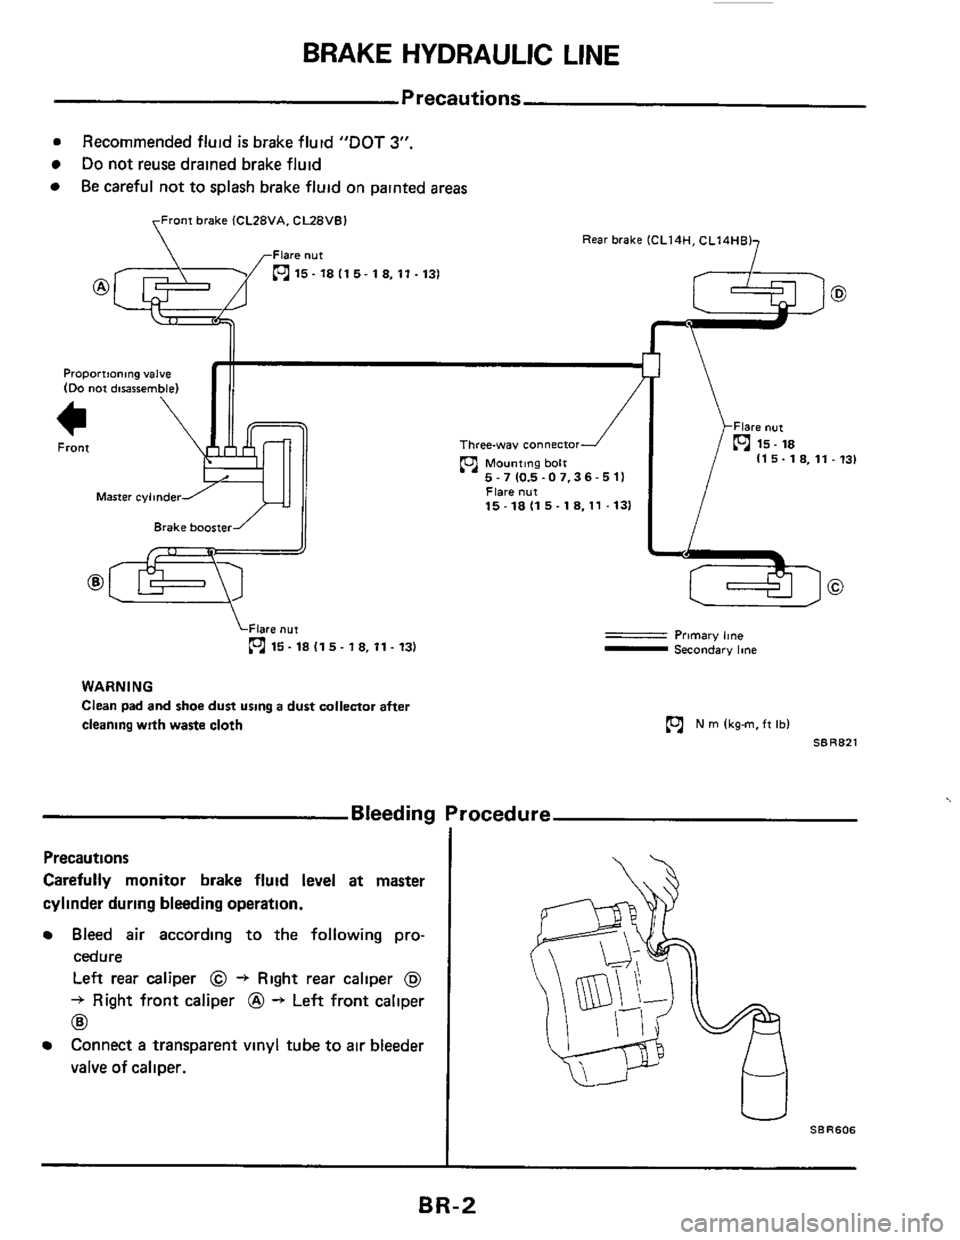 NISSAN 300ZX 1984 Z31 Brake System Workshop Manual, Page 2